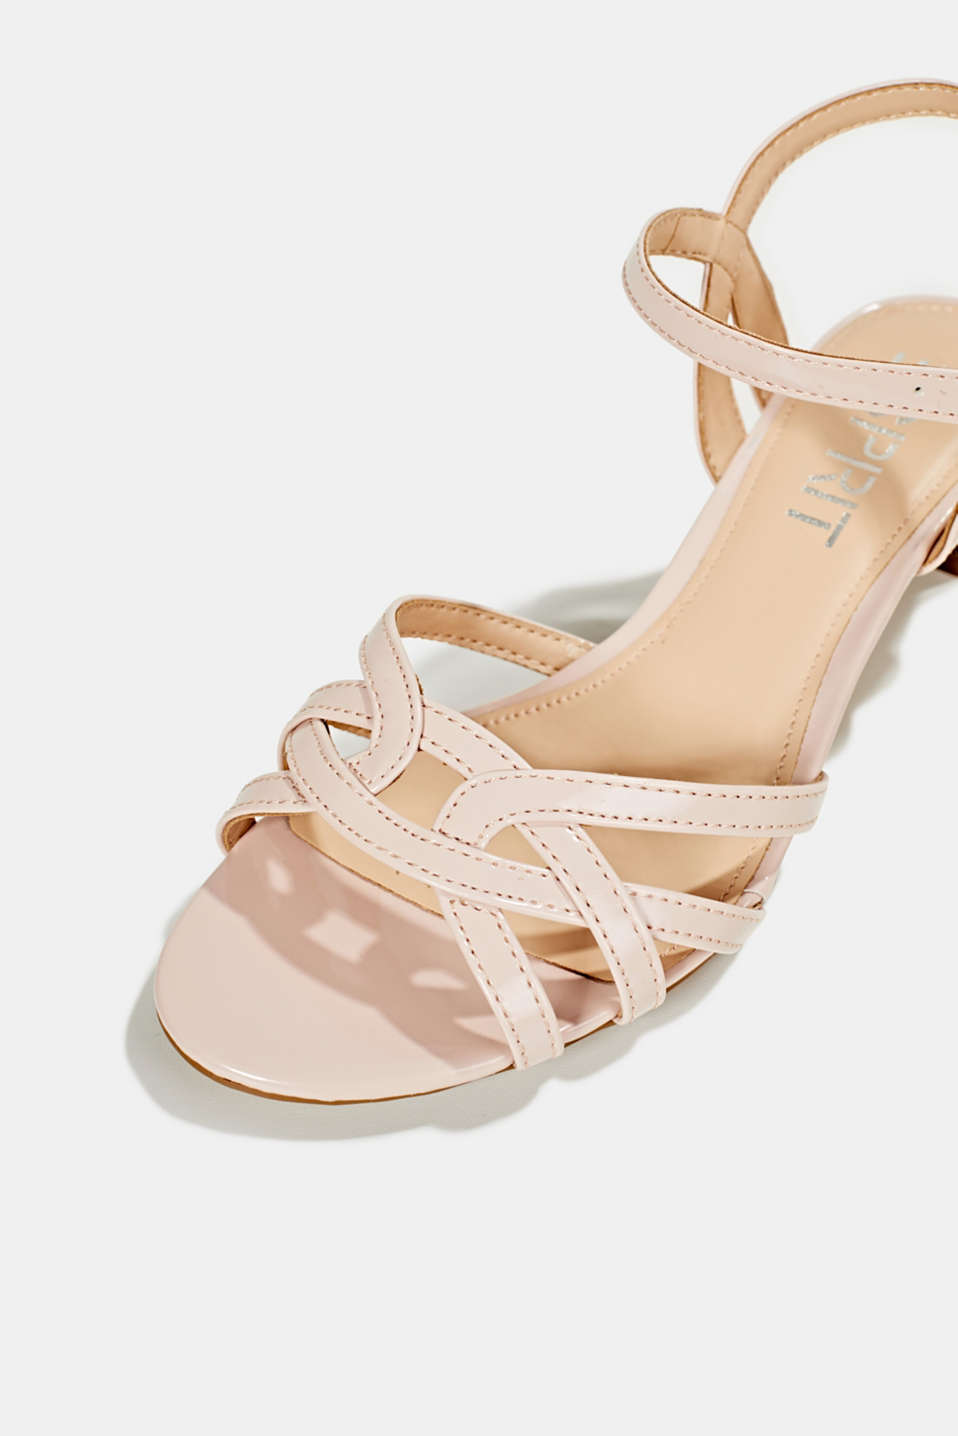 Sandals with straps in a braided look, NUDE, detail image number 4